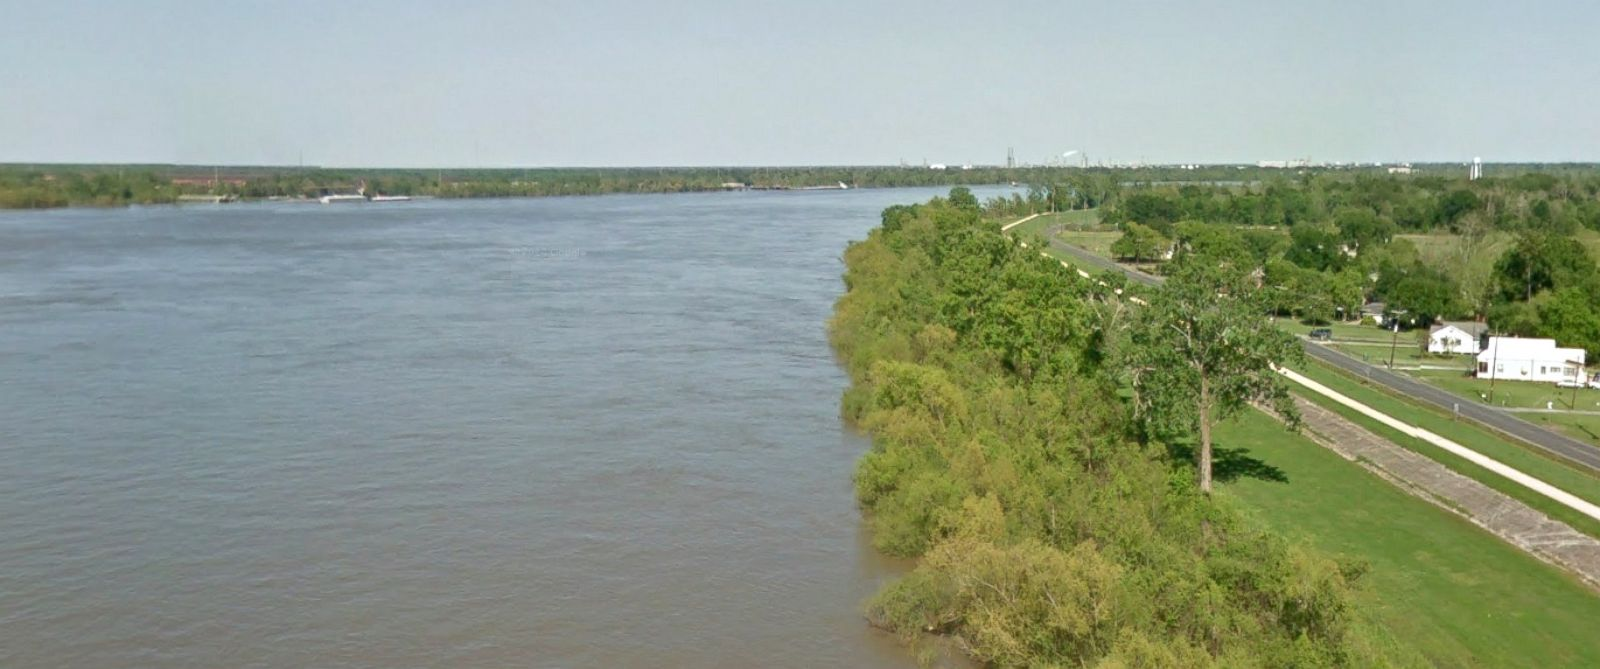 PHOTO: A Google Street View image from April, 2011 shows a section of the Mississippi River at St. John the Baptist Parish in Louisiana.